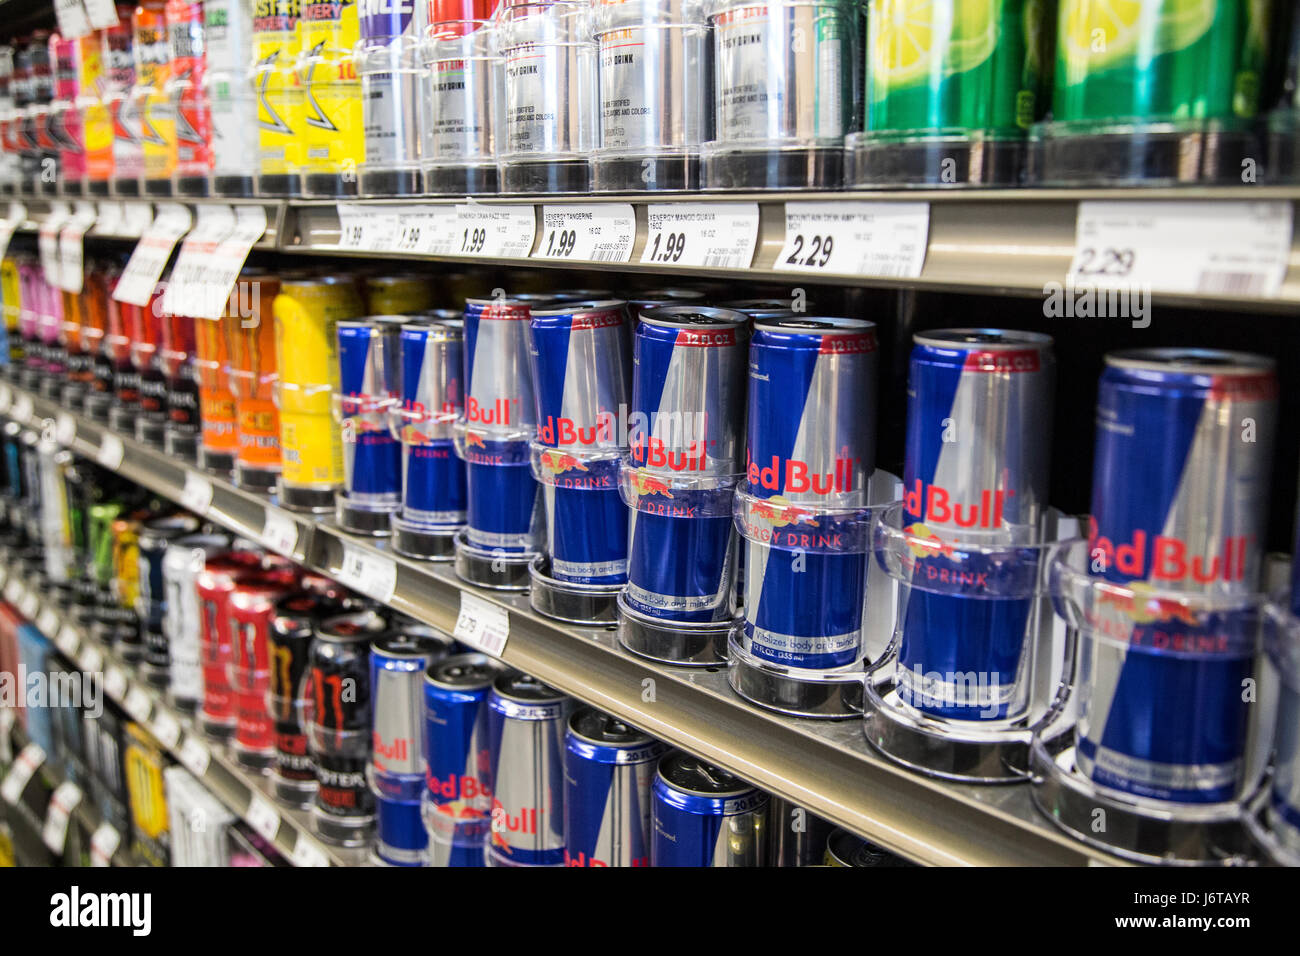 Red Bull Kühlschrank Slim : Cans red bull stockfotos cans red bull bilder alamy